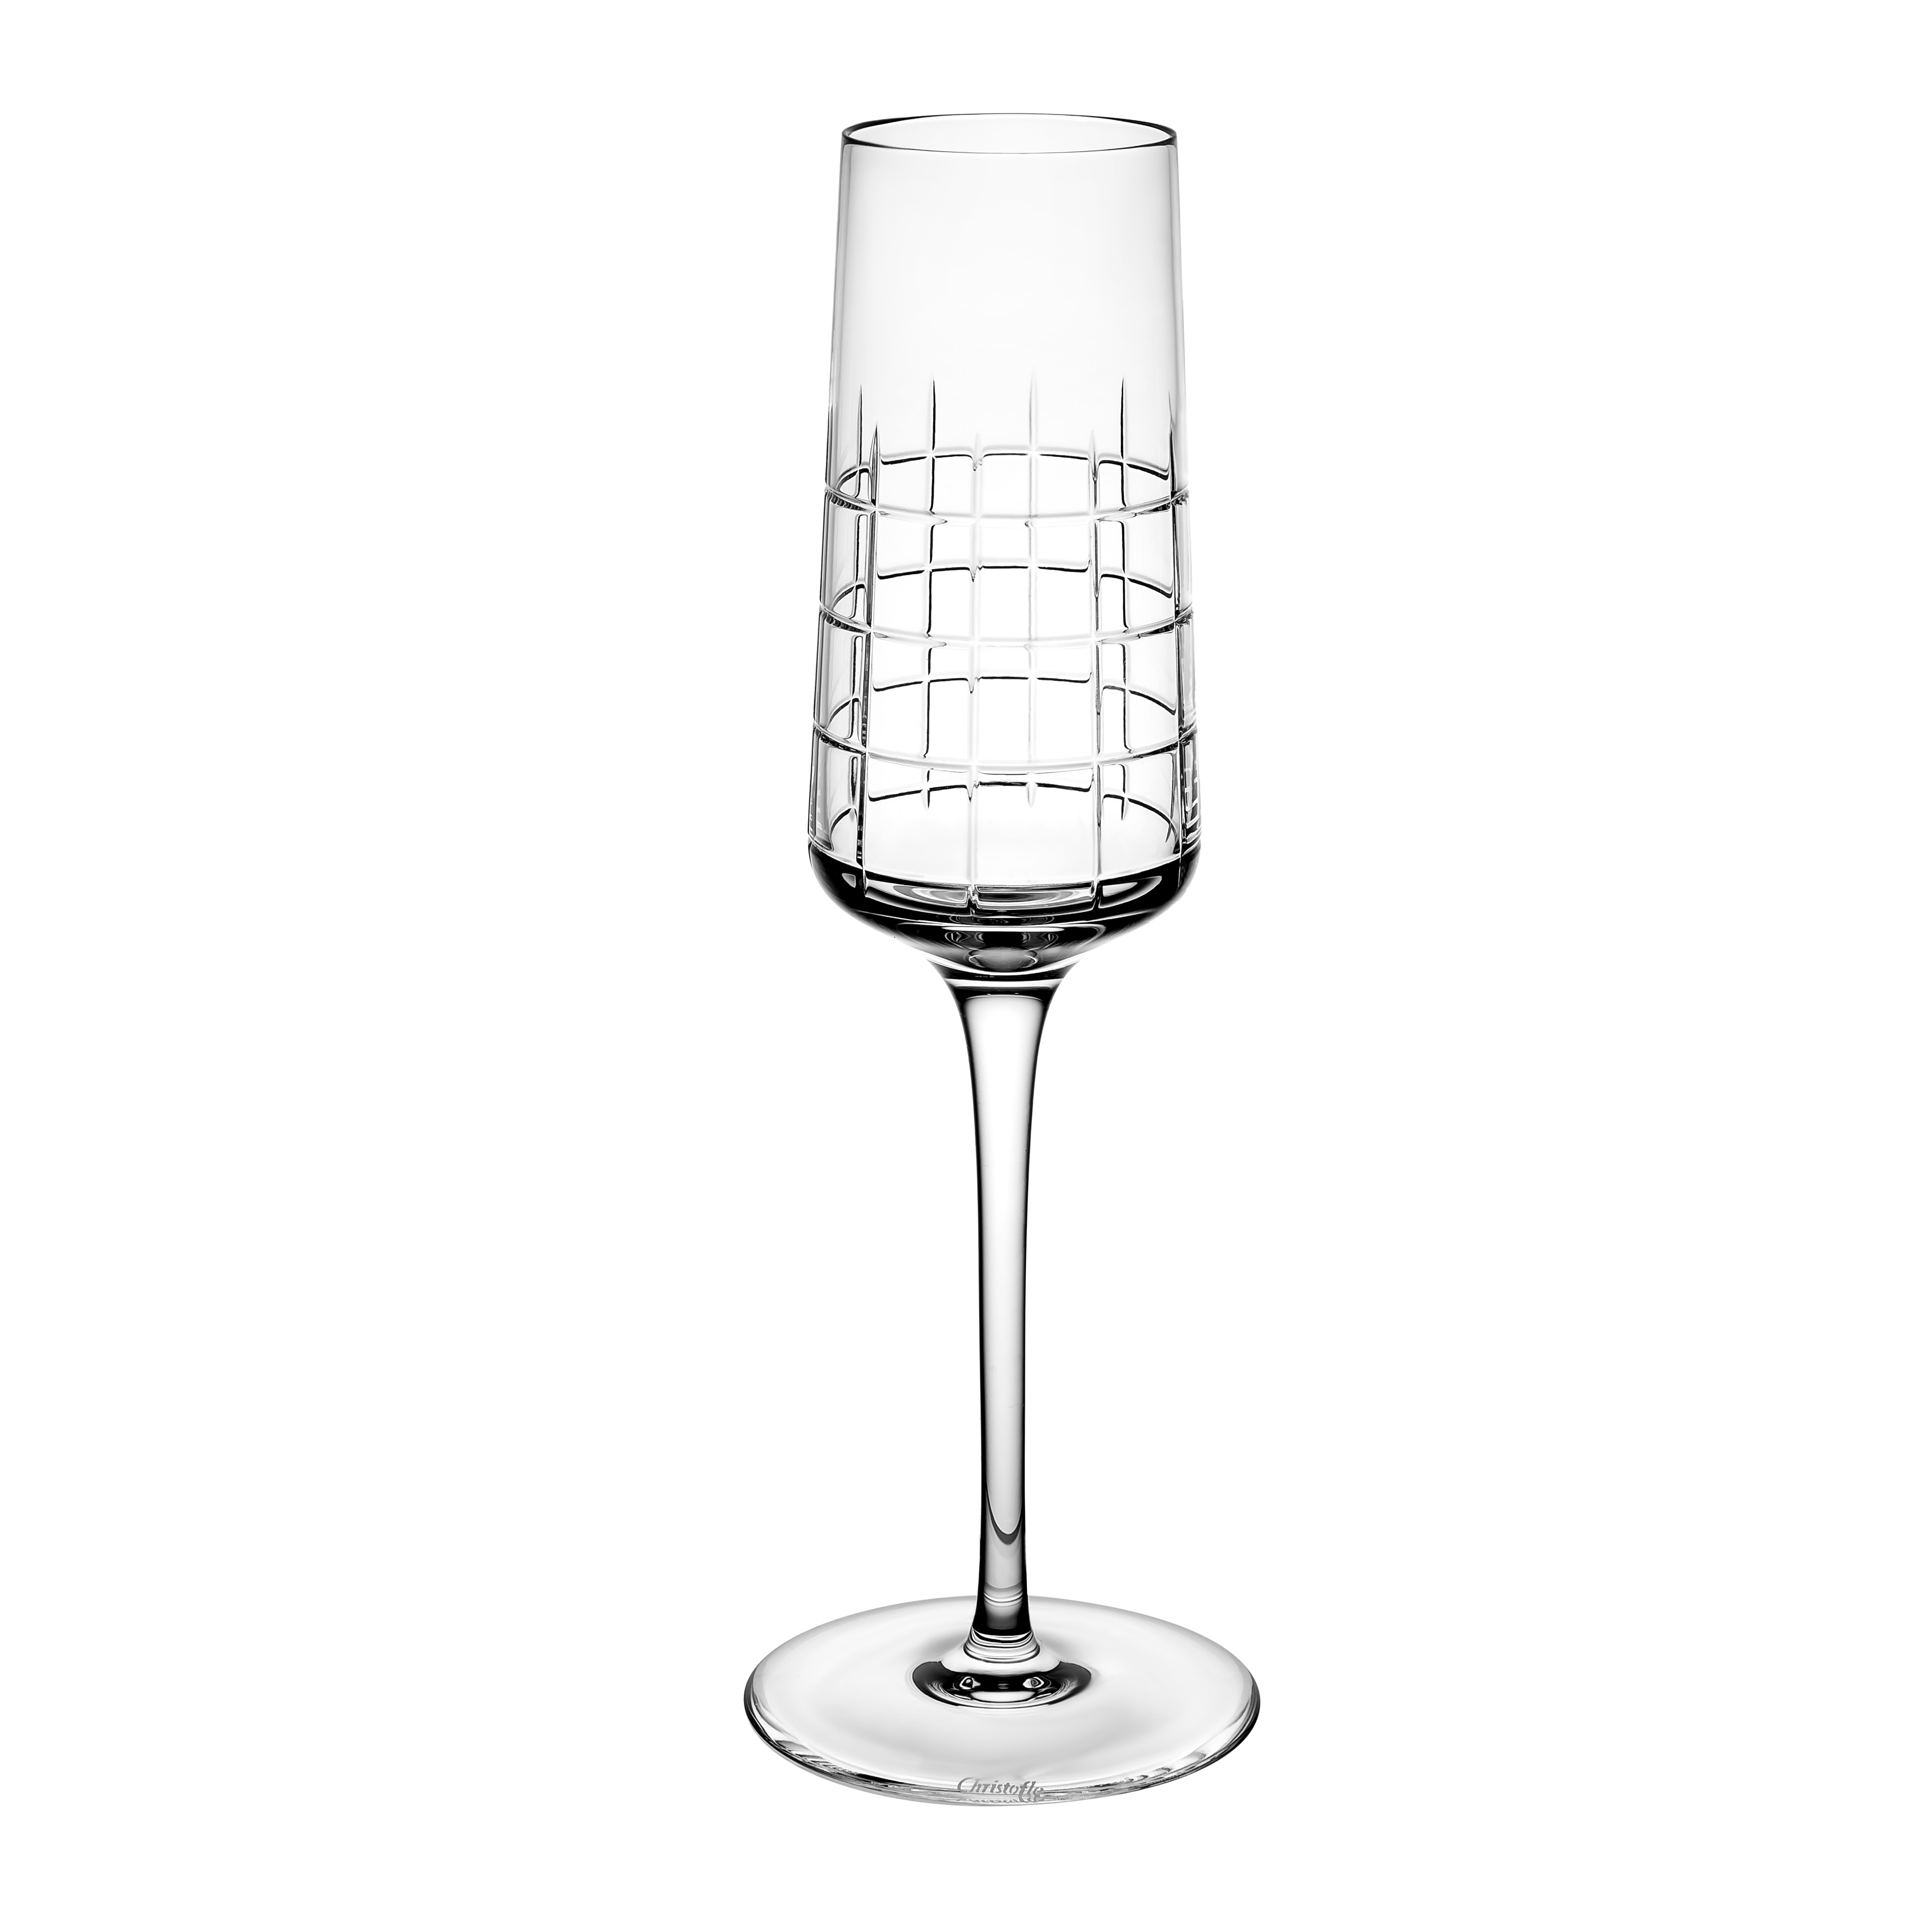 4000x4000 Christofle Champagne Flute In Crystal